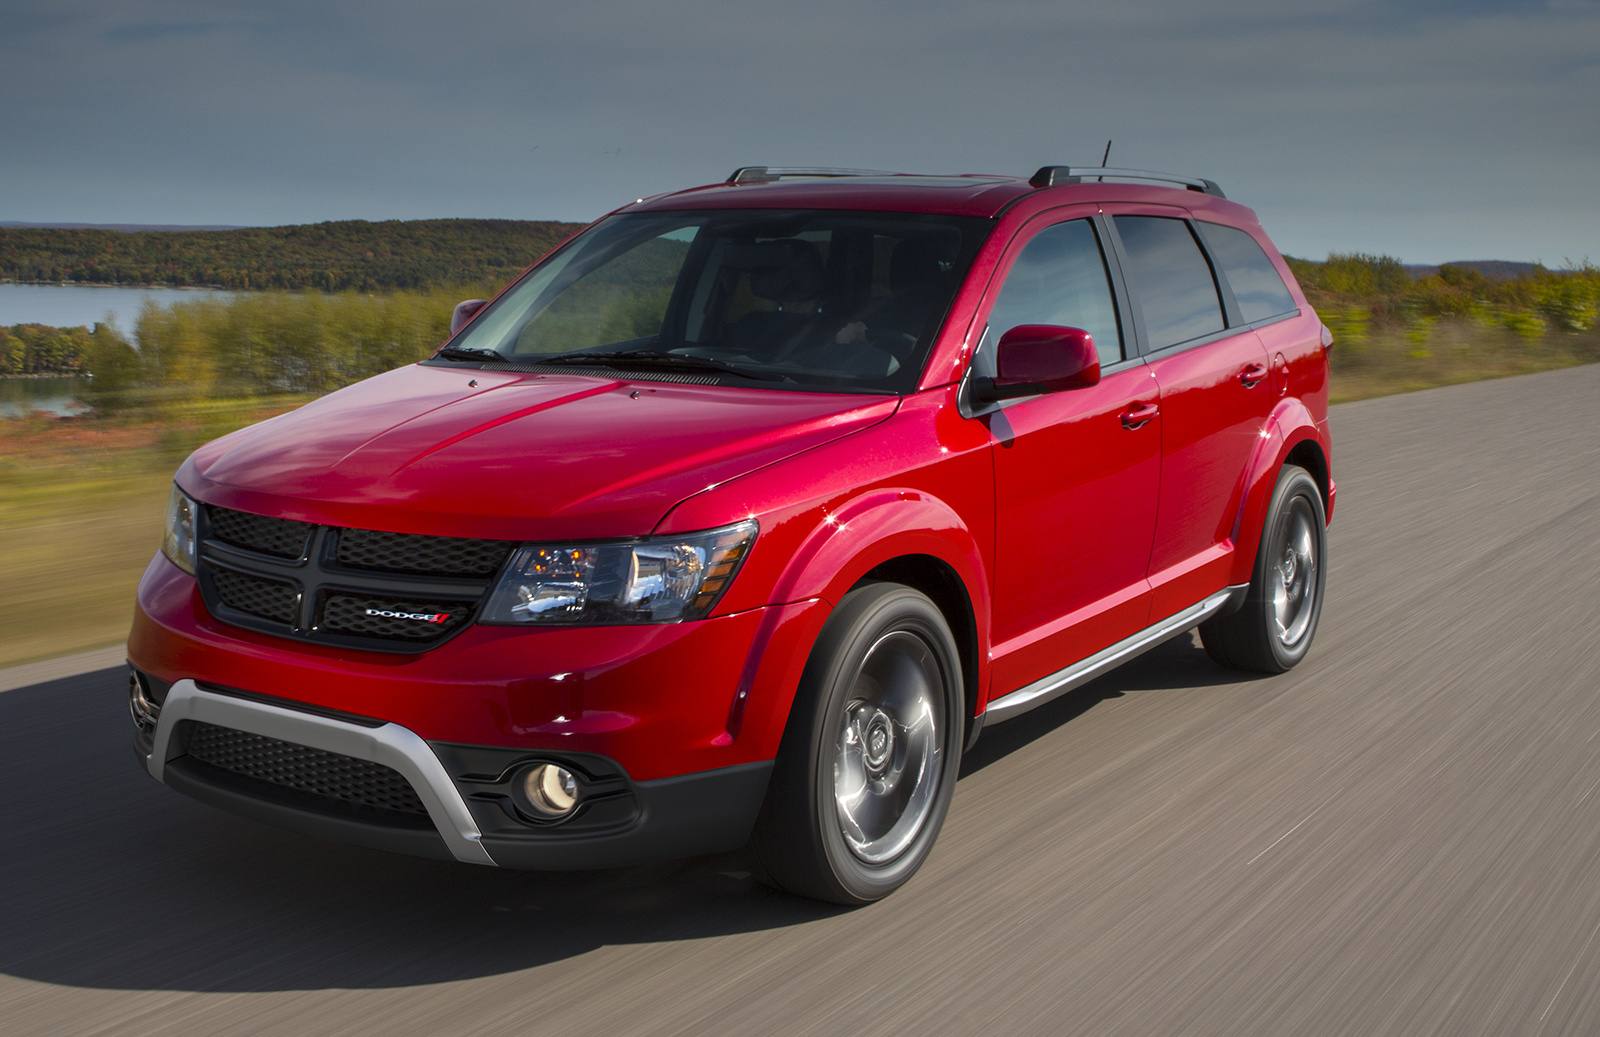 Dodge Journey Rt >> 2016 Dodge Journey - Overview - CarGurus